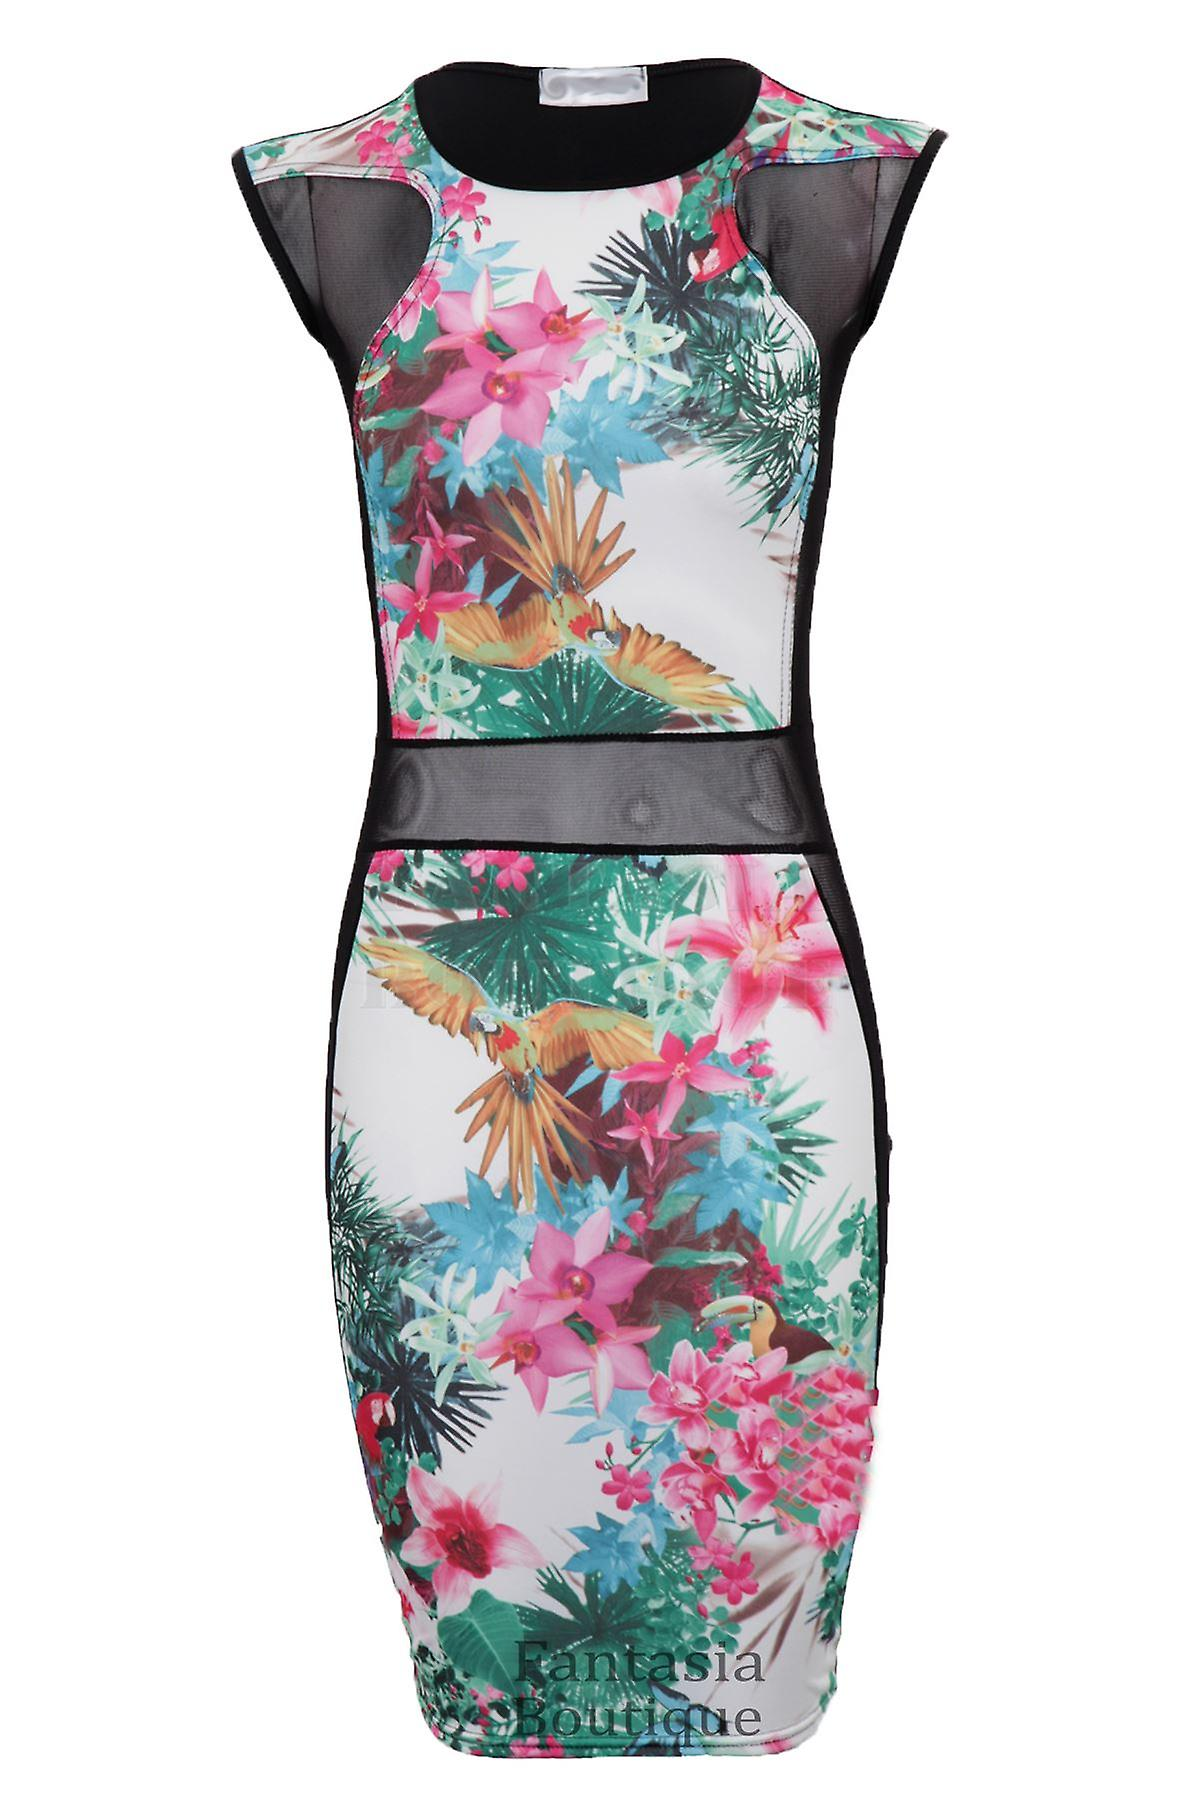 New Ladies Sleeveless Flower Print Mesh Insert Bodycon Women's Dress